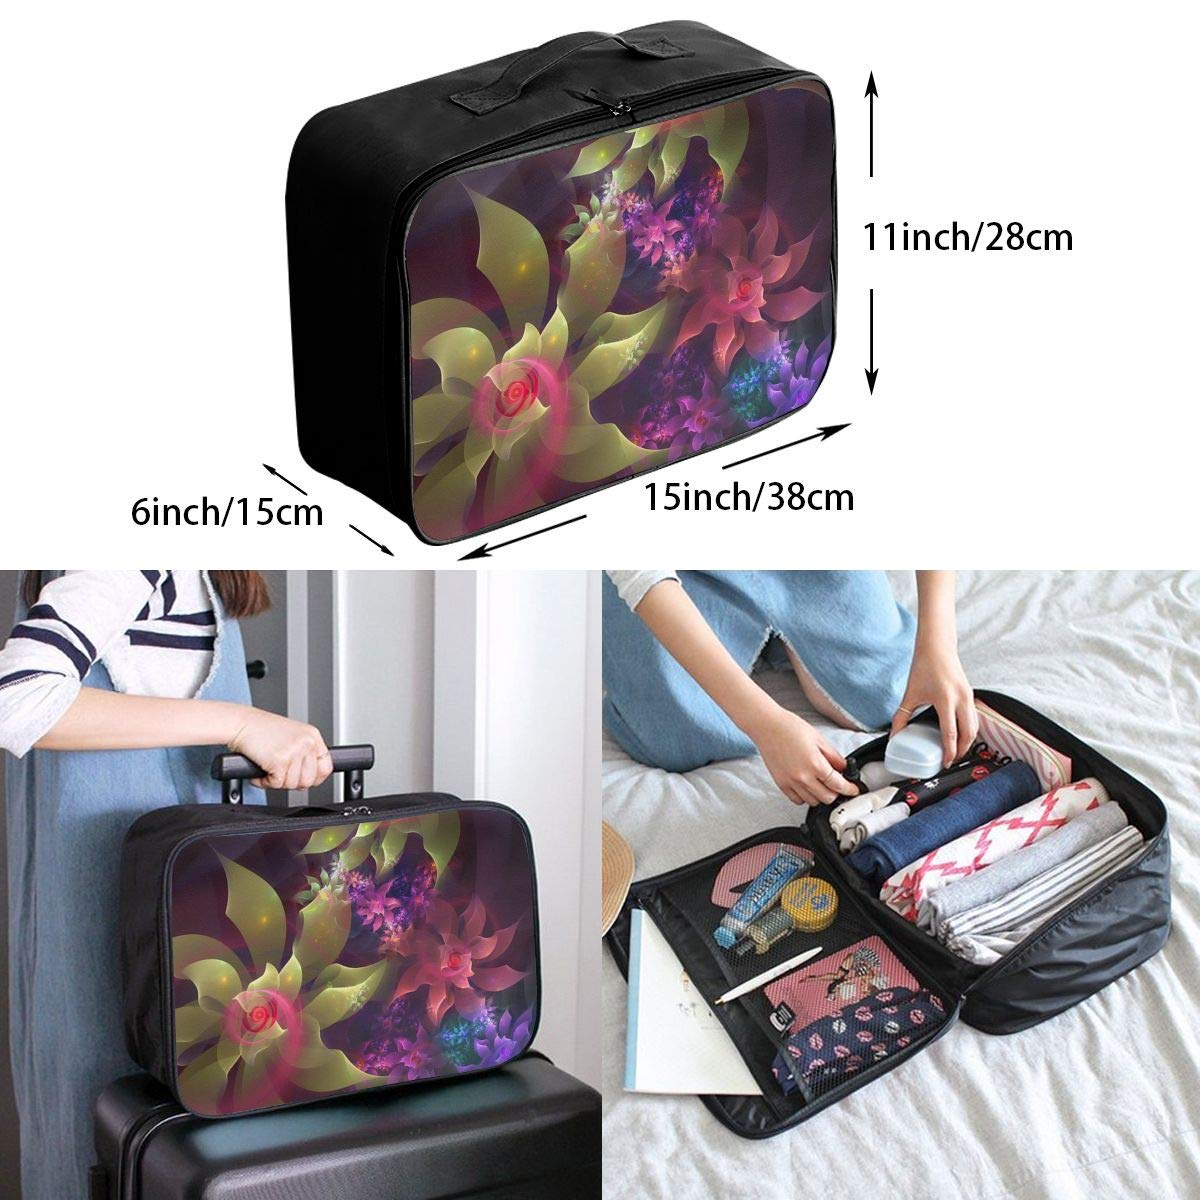 Travel Luggage Duffle Bag Lightweight Portable Handbag Fantasy Flowers Pattern Large Capacity Waterproof Foldable Storage Tote